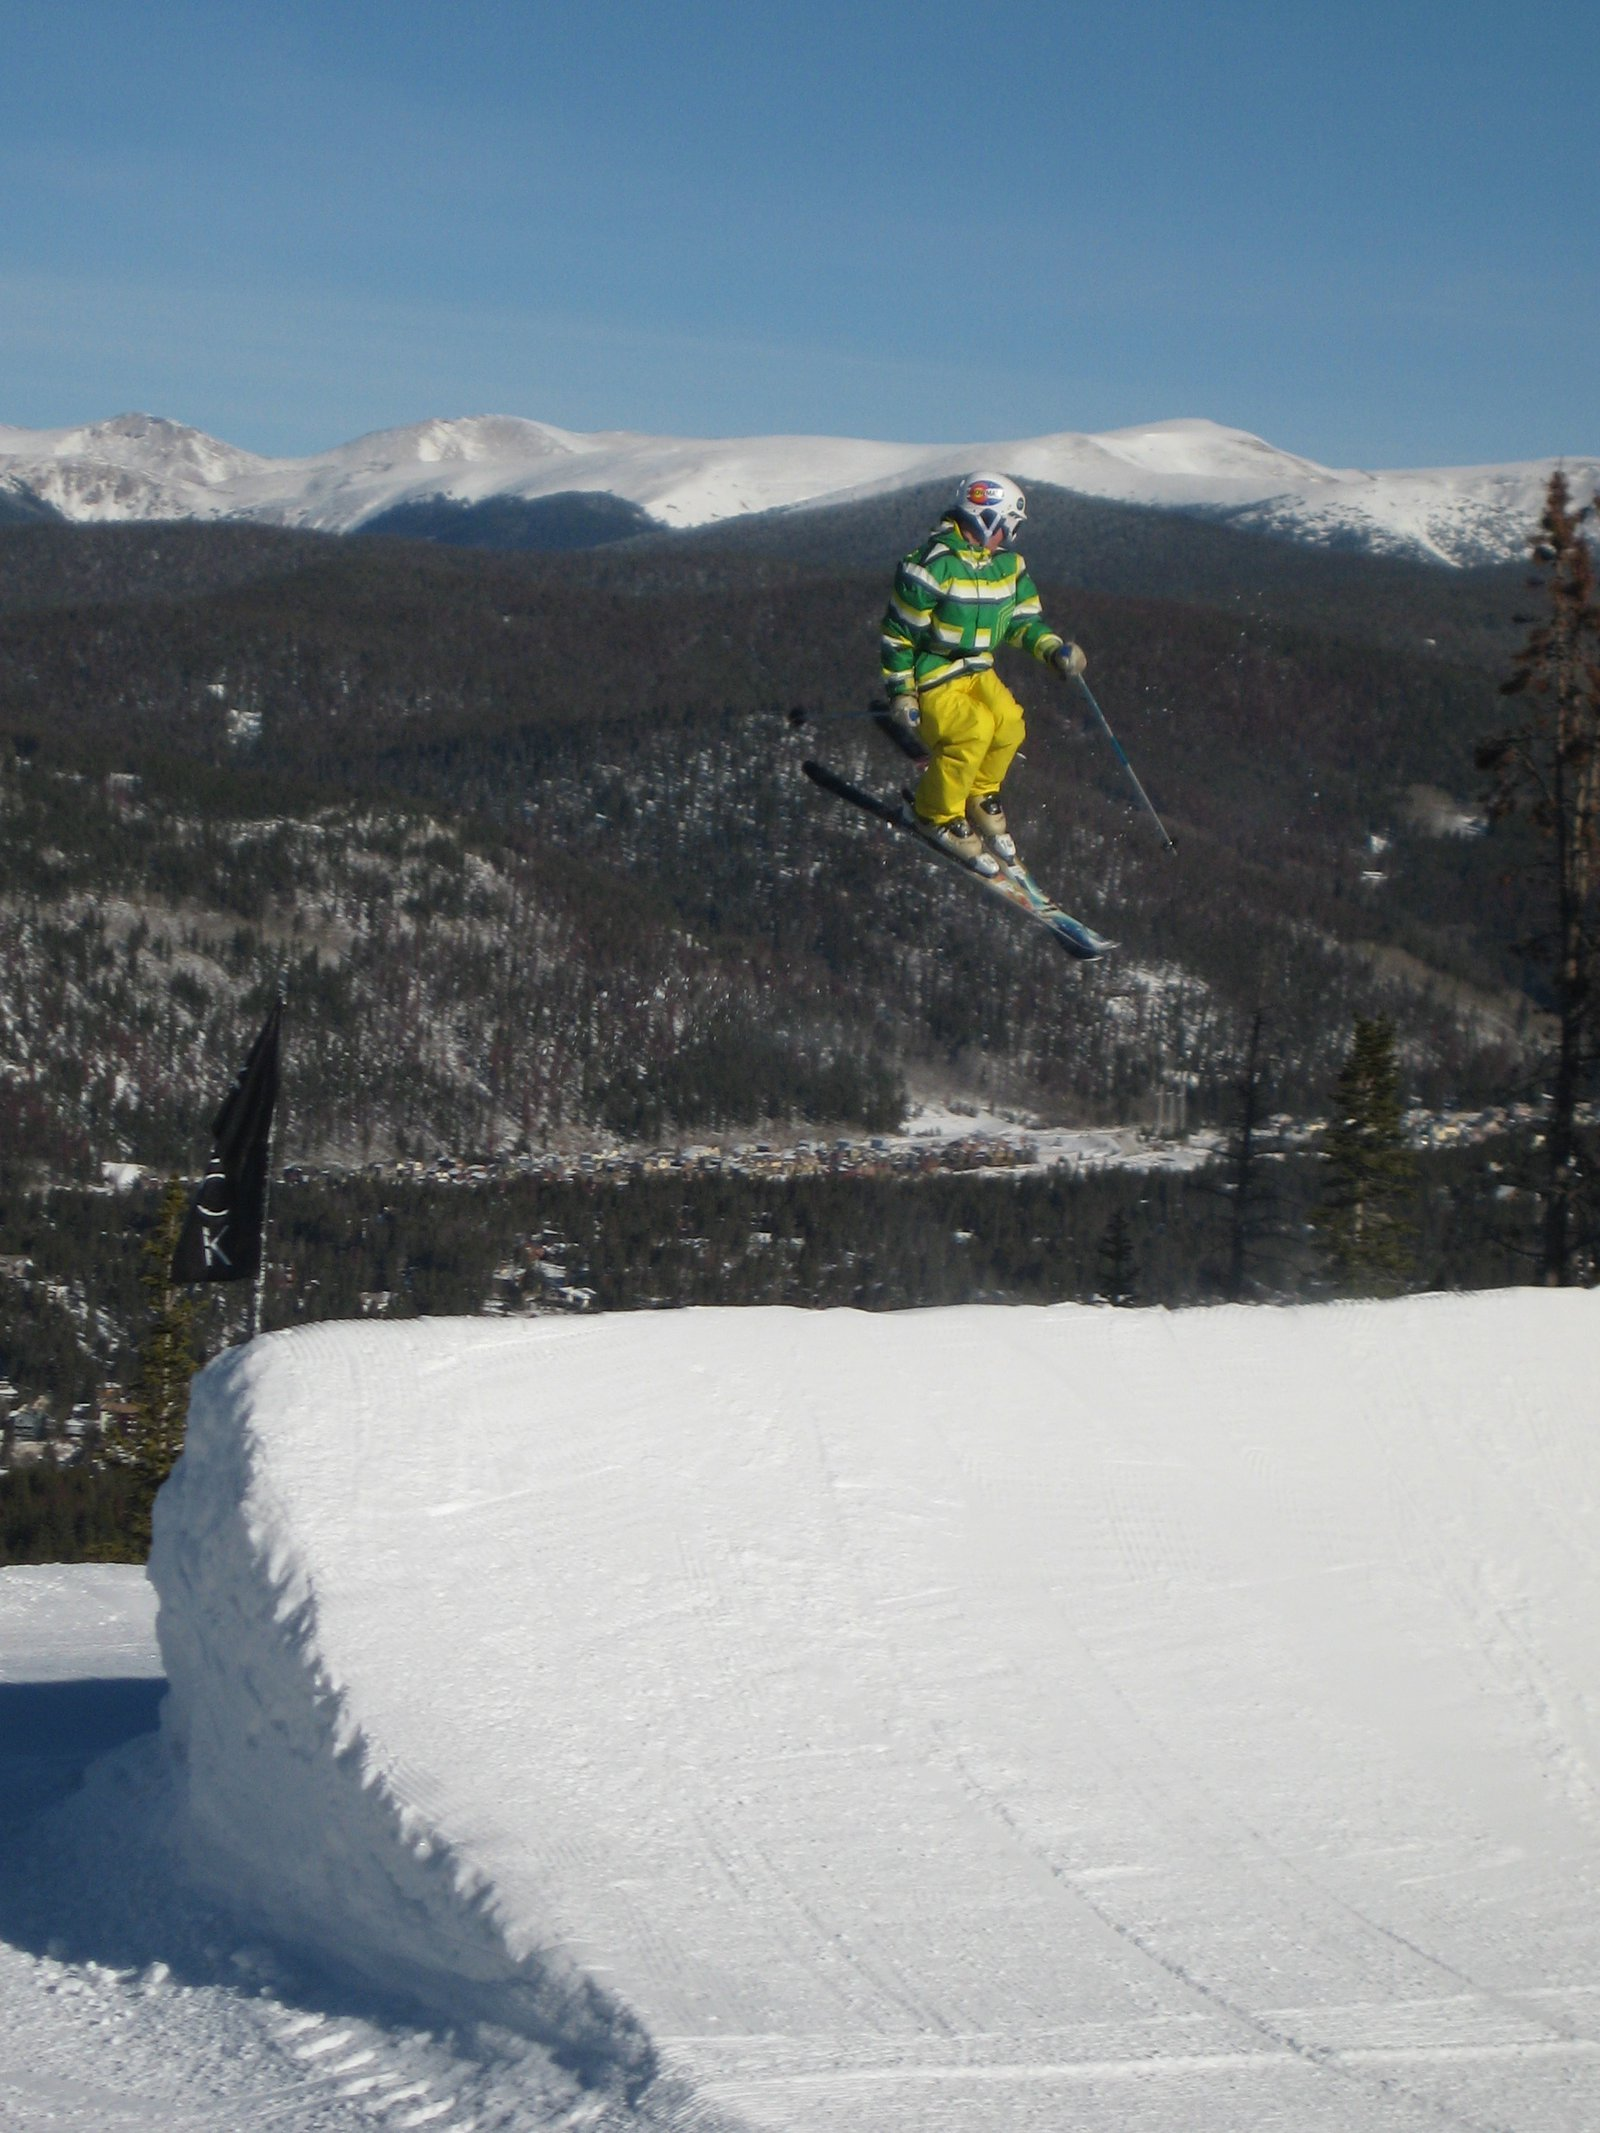 540 in breck